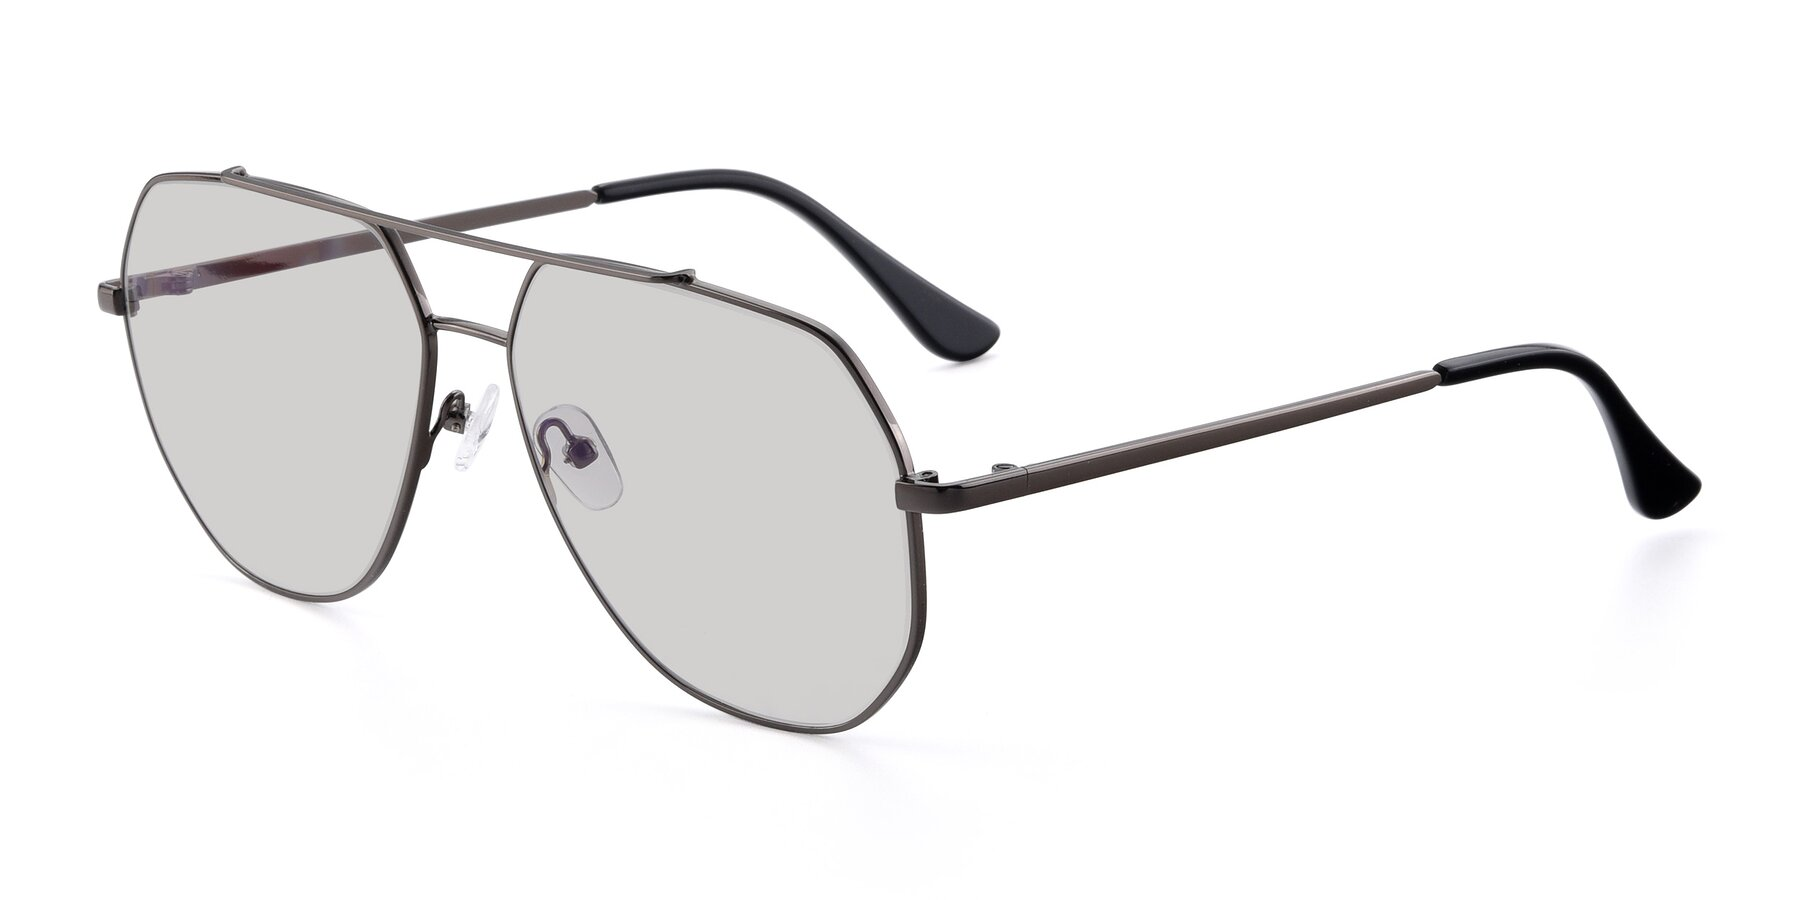 Angle of 9438 in Gunmetal with Light Gray Tinted Lenses